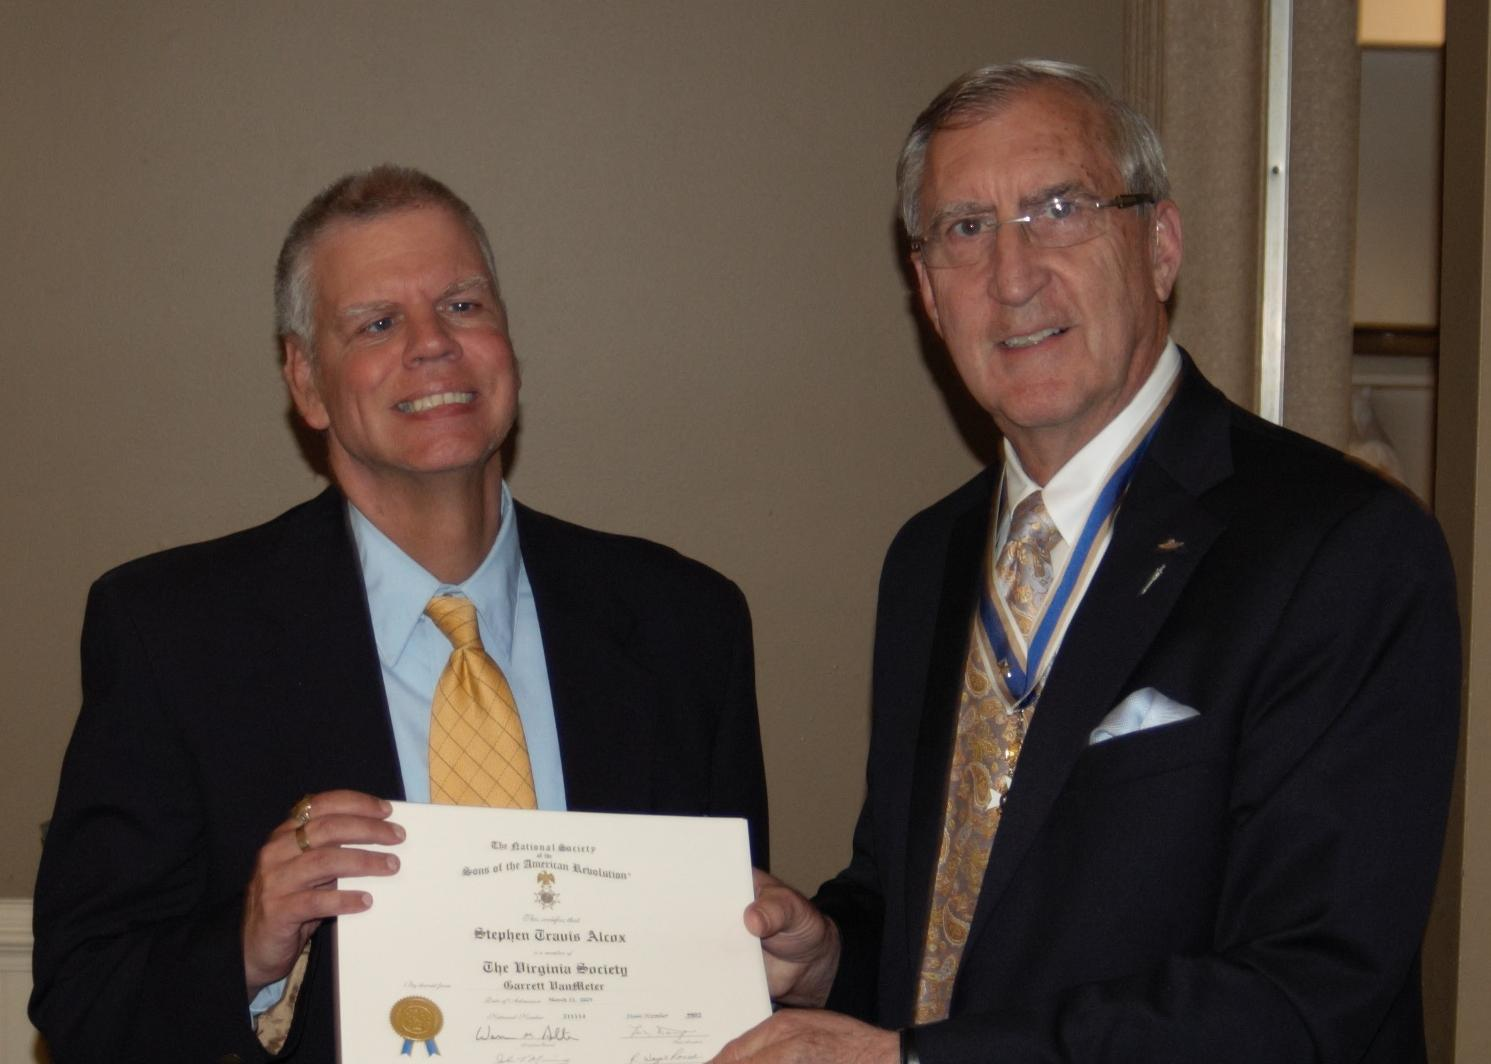 Newly inducted member Stephen Alcox receives his SAR Certificate from President Hawkins.